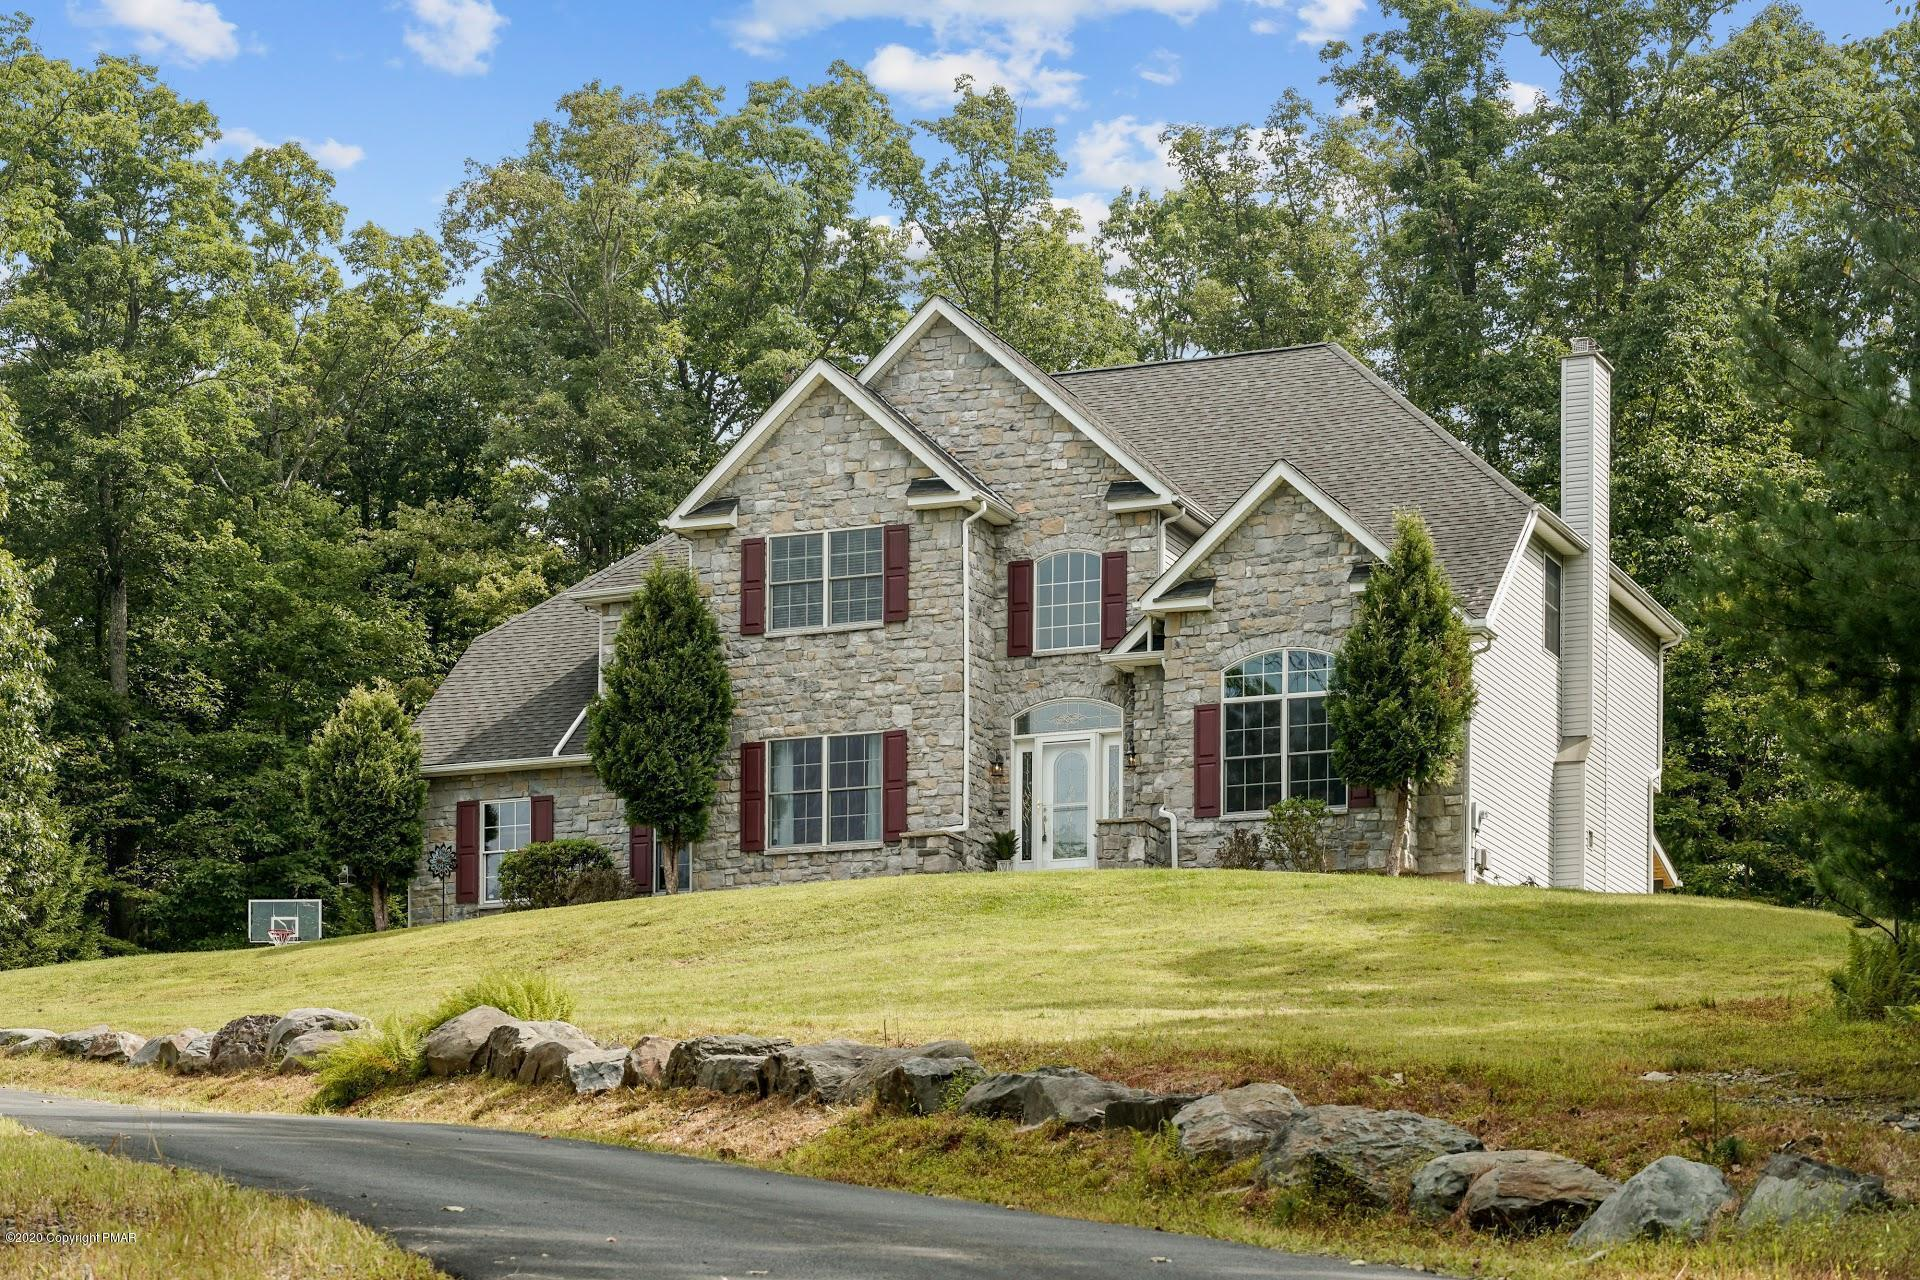 298 Cranberry Rd, East Stroudsburg, PA 18301